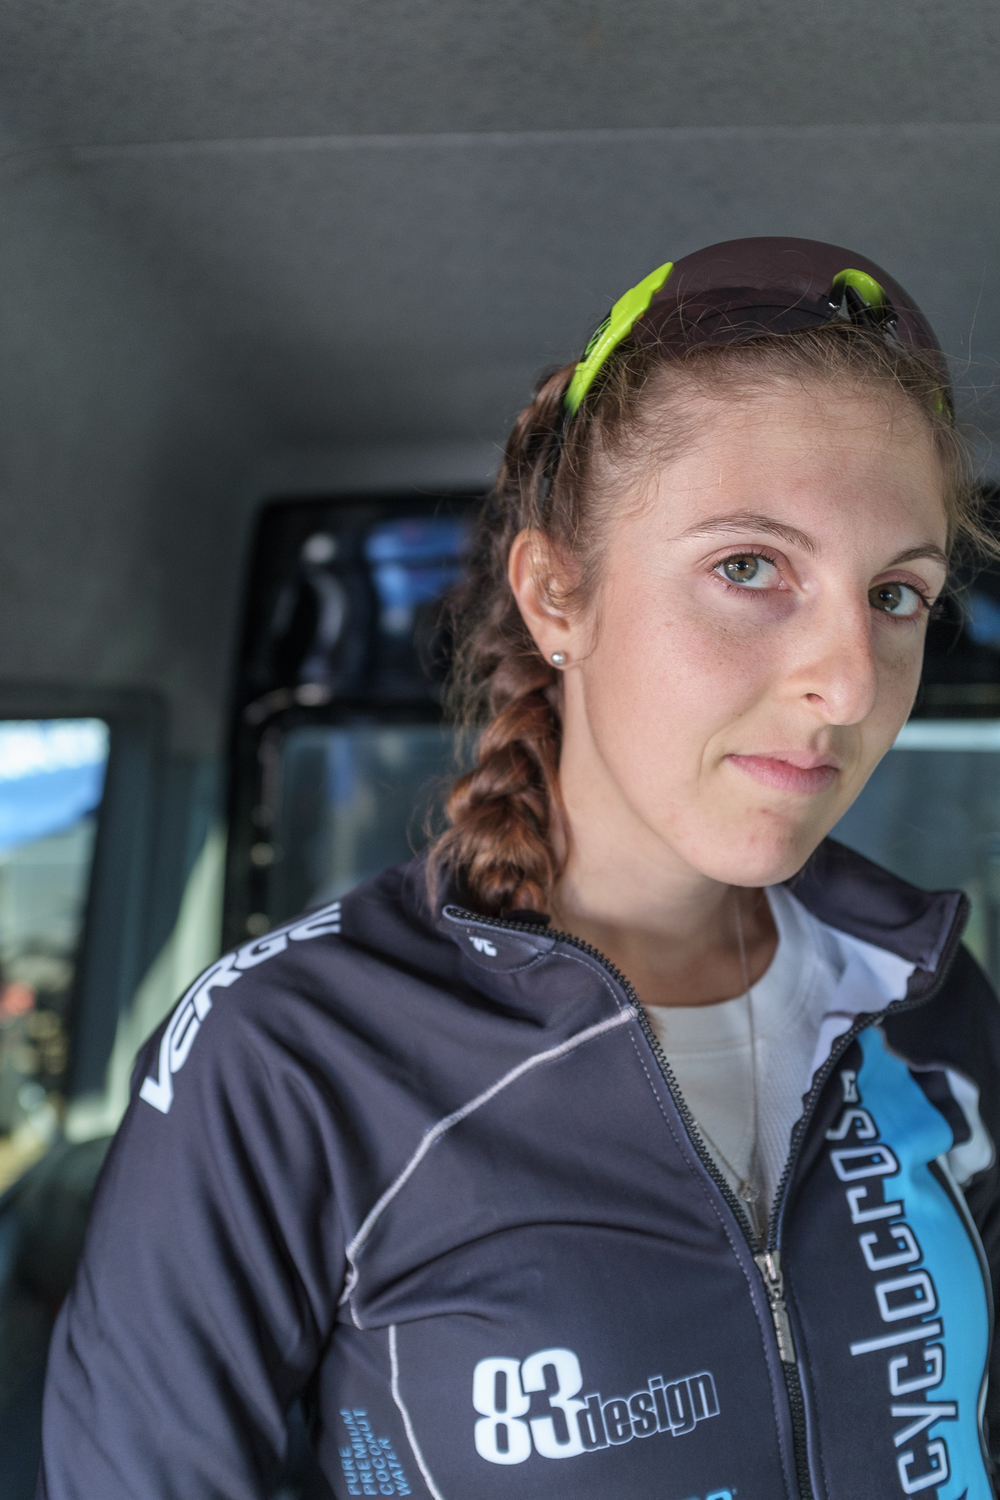 141009_Cyclocross_Pretty_Damned_Fast_Heather_Jen_Jordan_Rough_edits-28.jpg